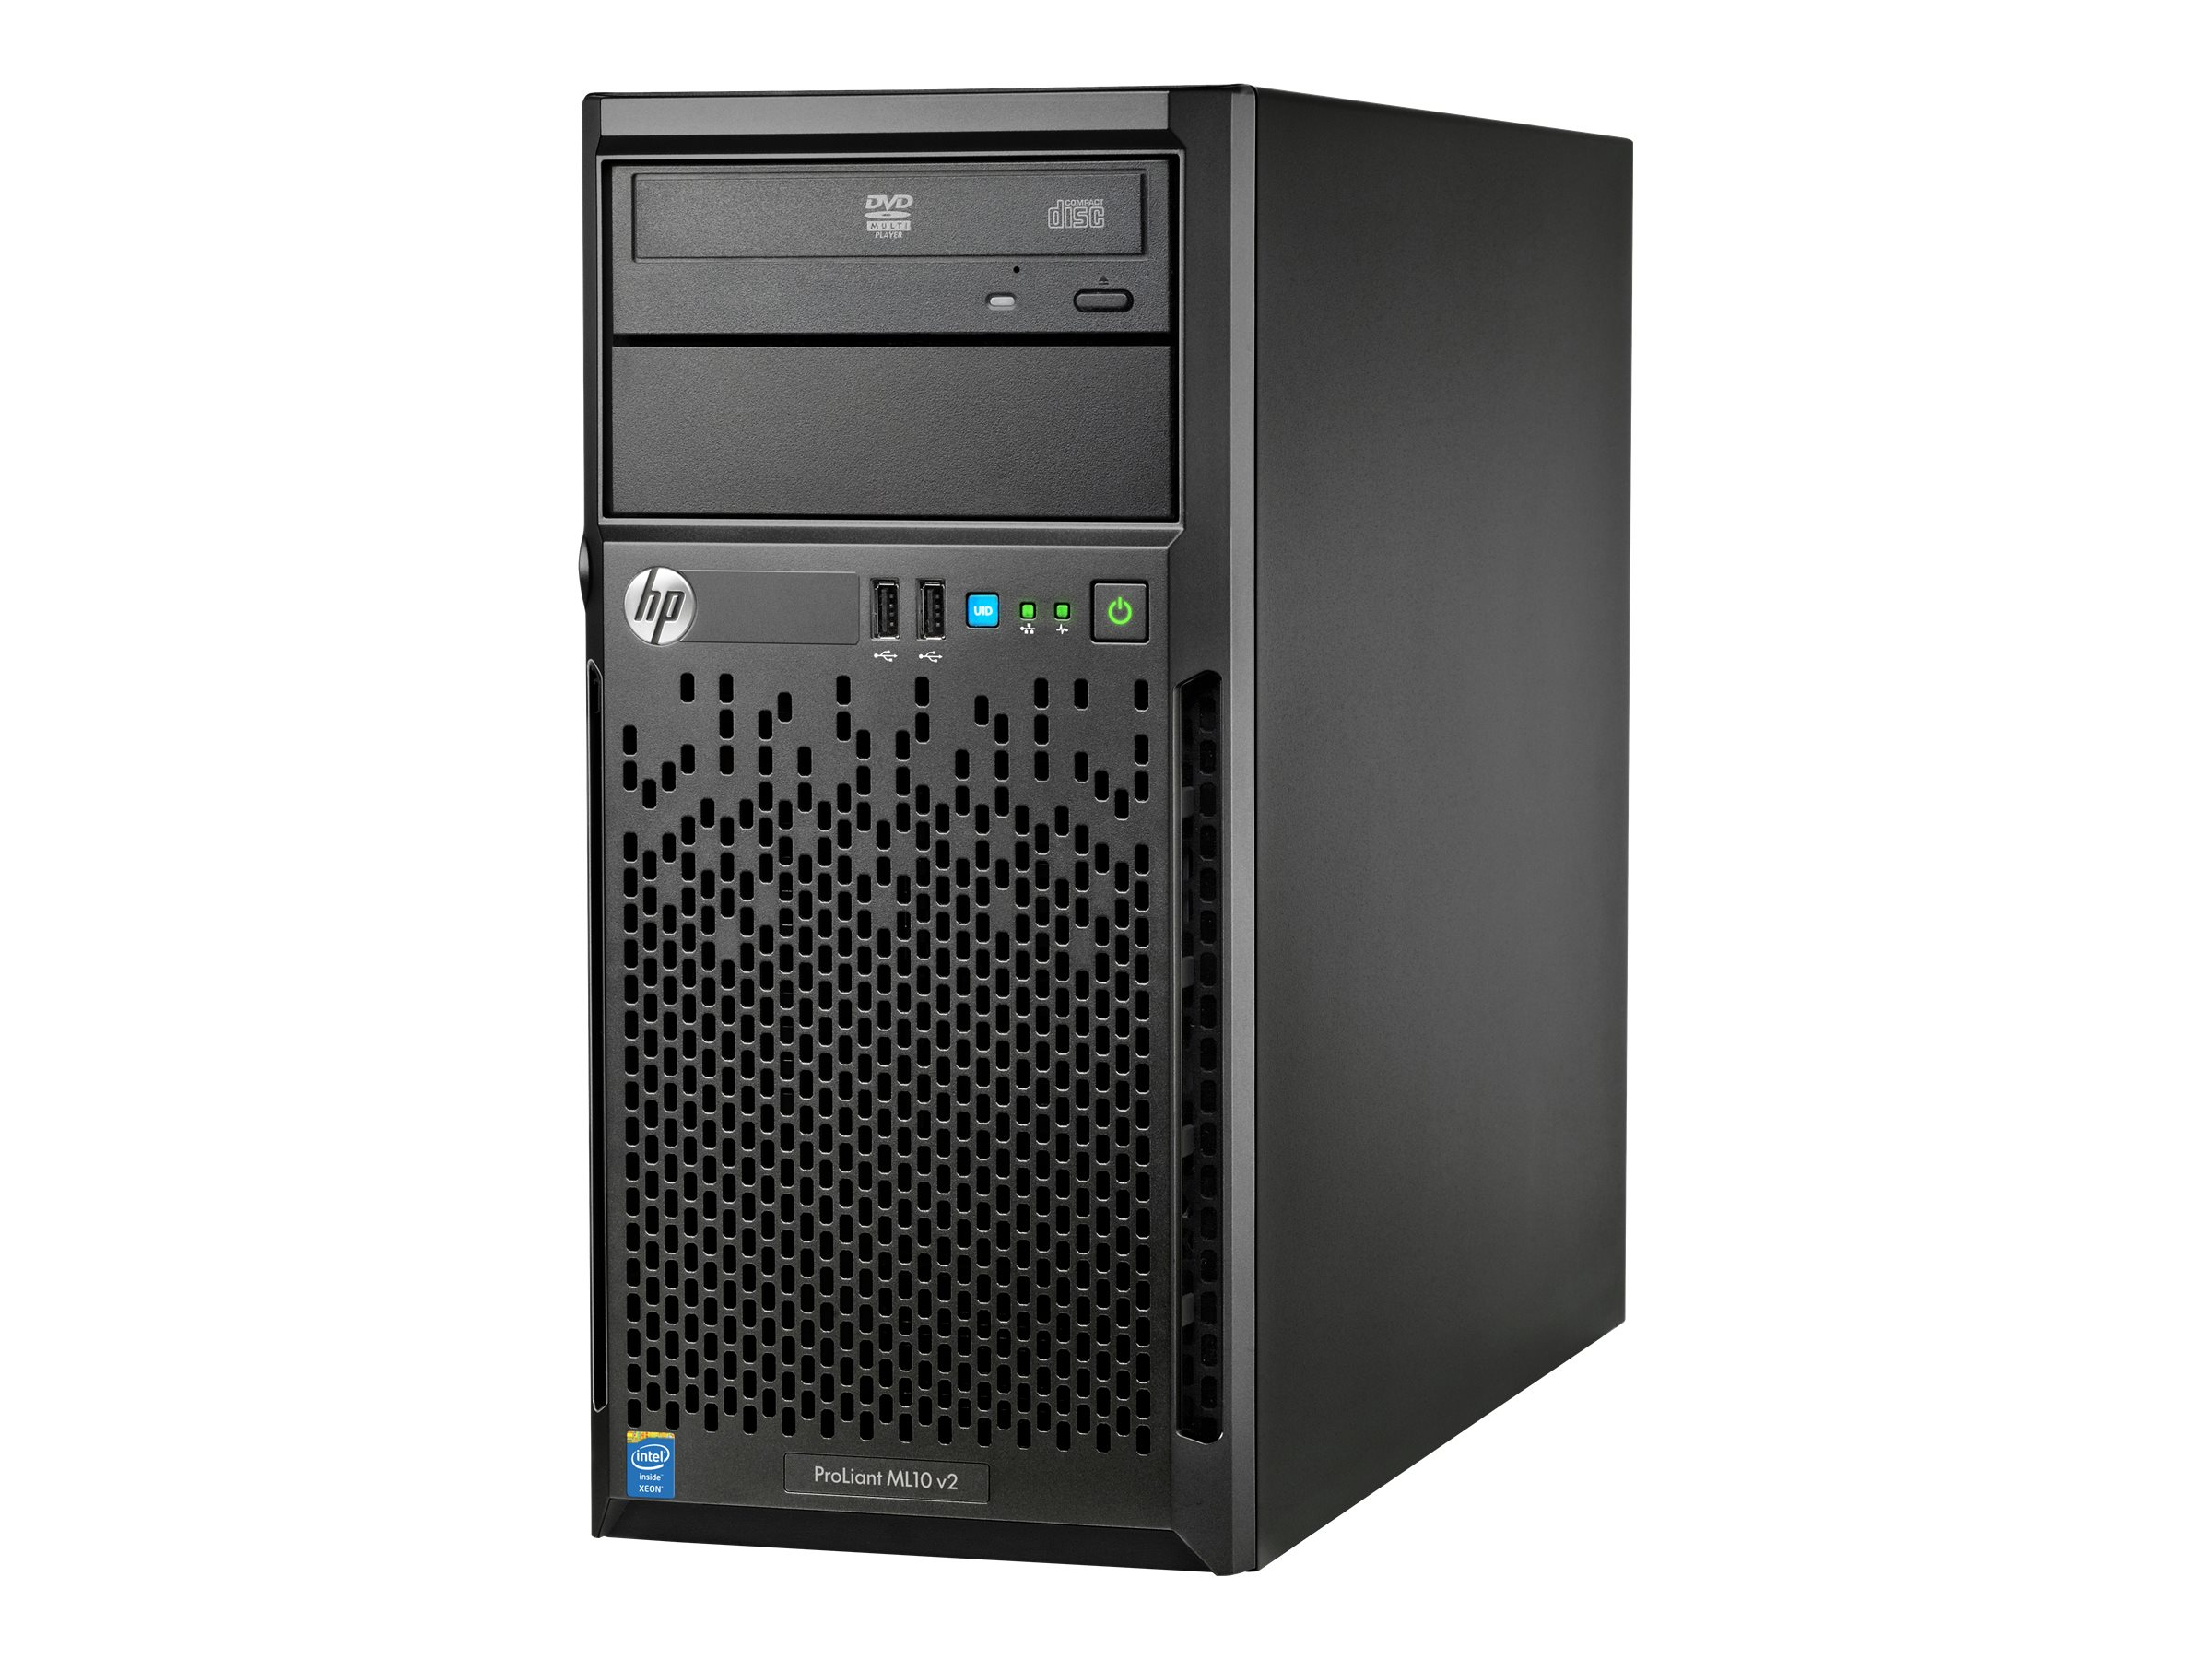 HPE Smart Buy ProLiant ML10 v2 Intel 3.1GHz Xeon, 812129-S01, 19459268, Servers